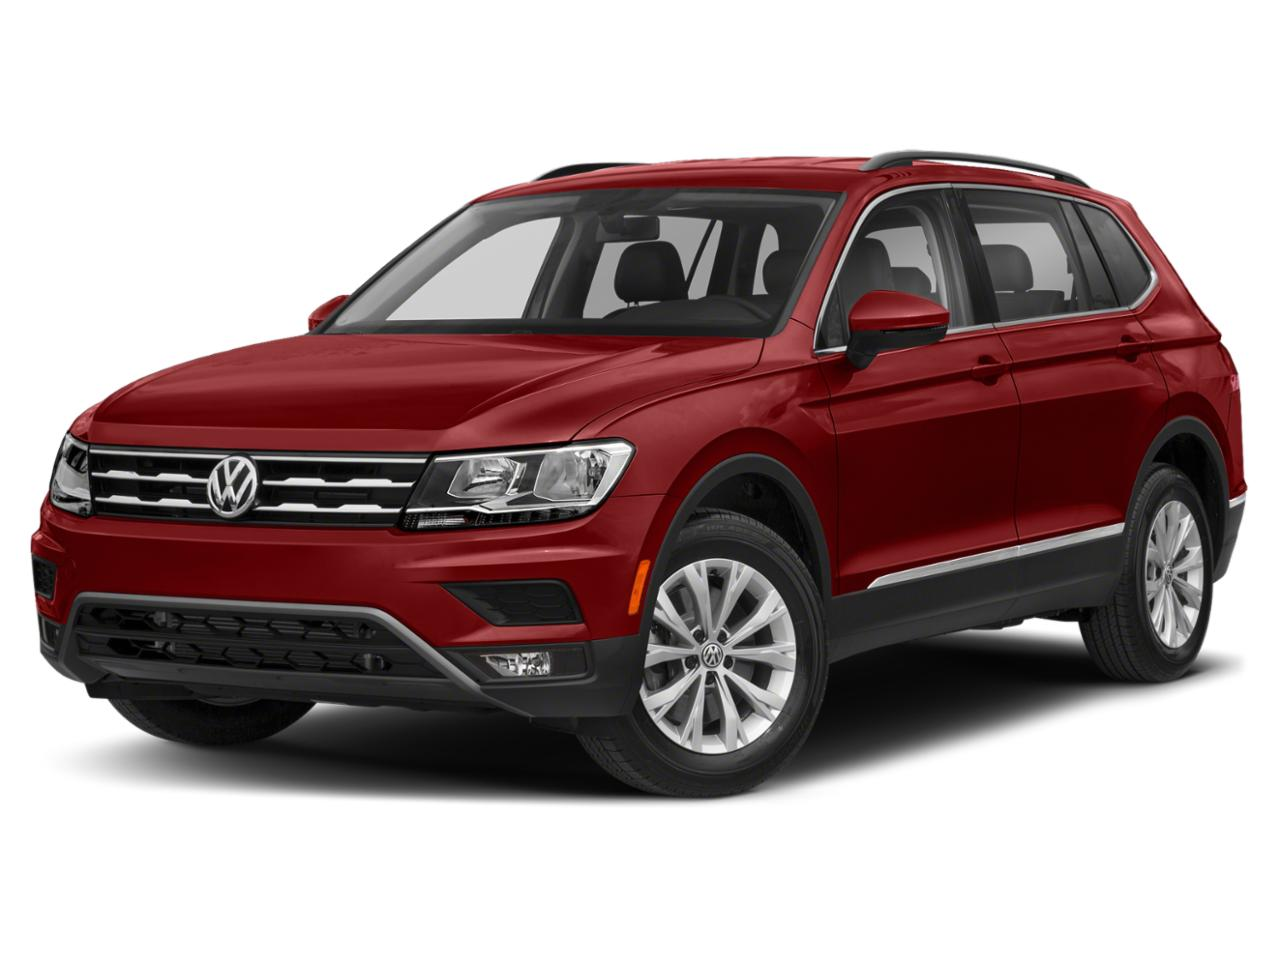 2021 Volkswagen Tiguan Vehicle Photo in Oshkosh, WI 54904